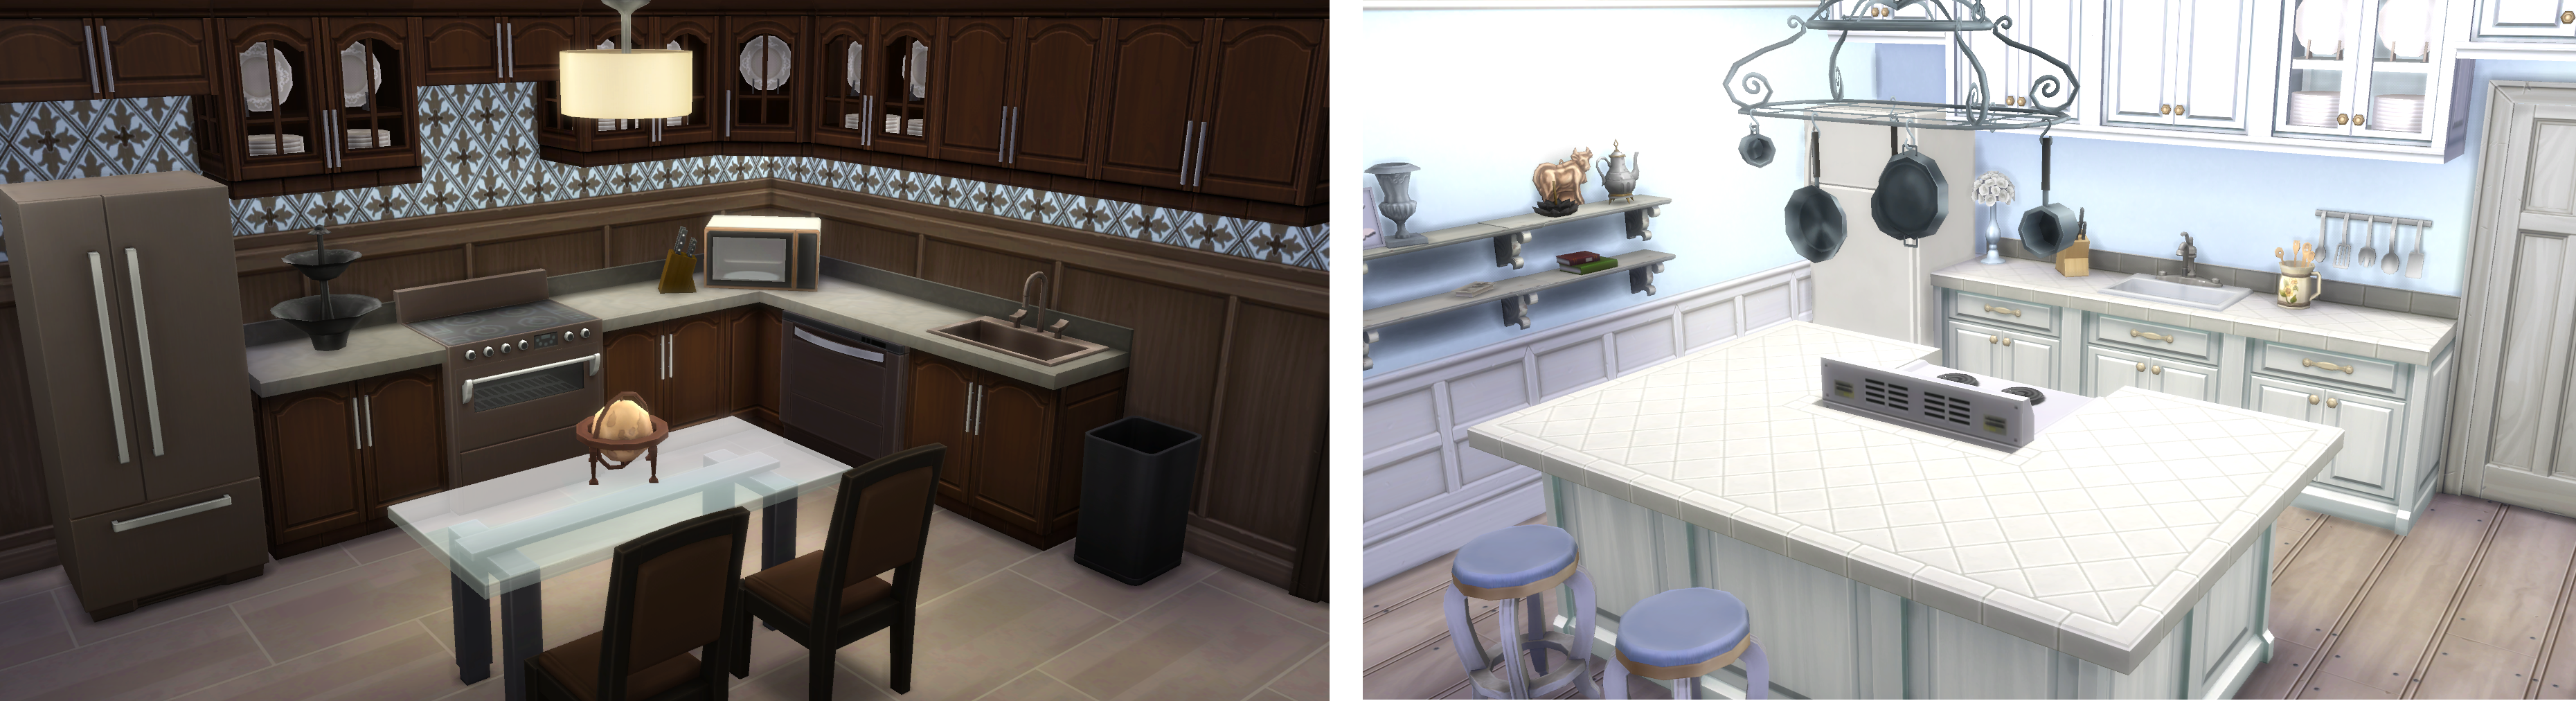 Sims Kitchen The Sims 4 Cool Kitchen Tips For A Lovely Layout Simsvip